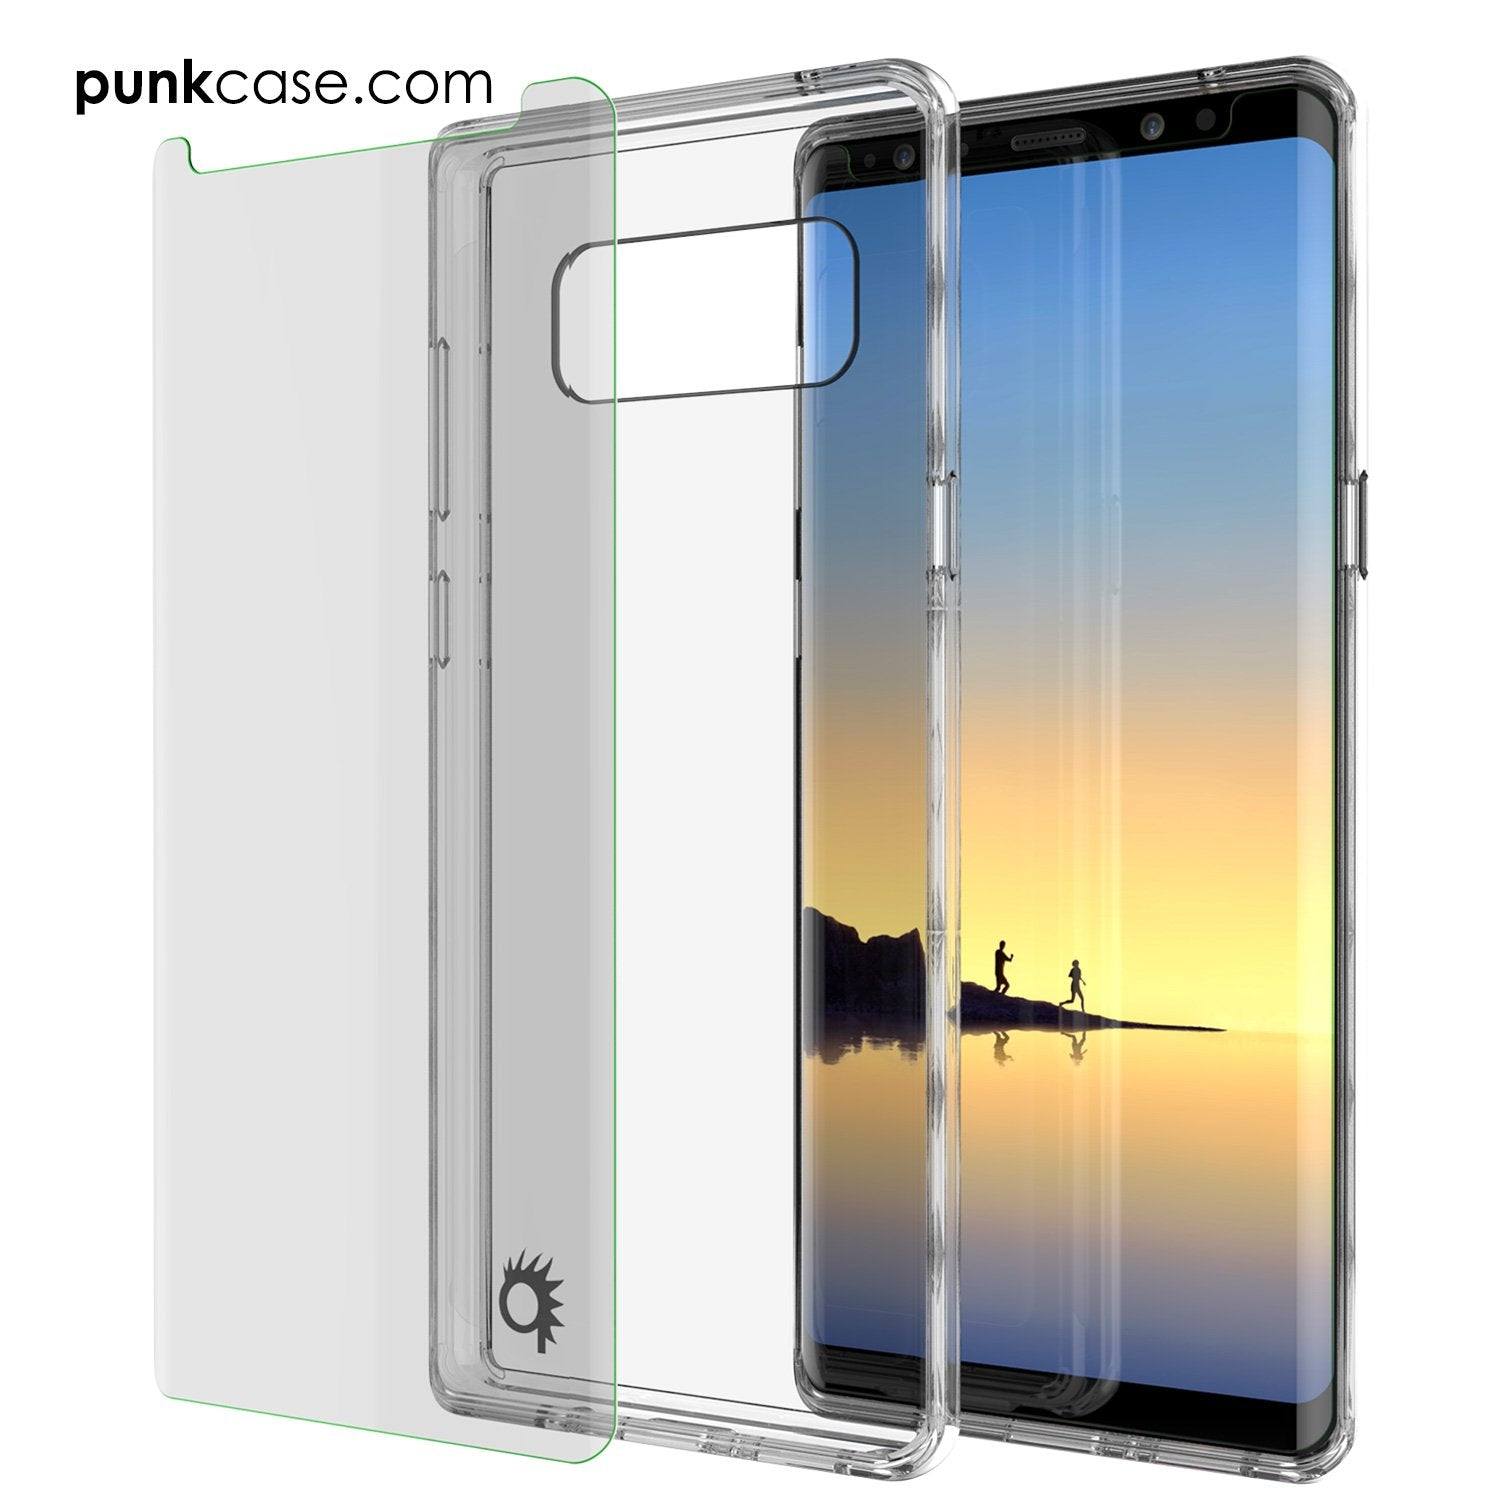 Galaxy Note 8 Case, PUNKcase [LUCID 2.0 Series] [Slim Fit] Armor Cover w/Integrated Anti-Shock System & Screen Protector [Crystal Black]